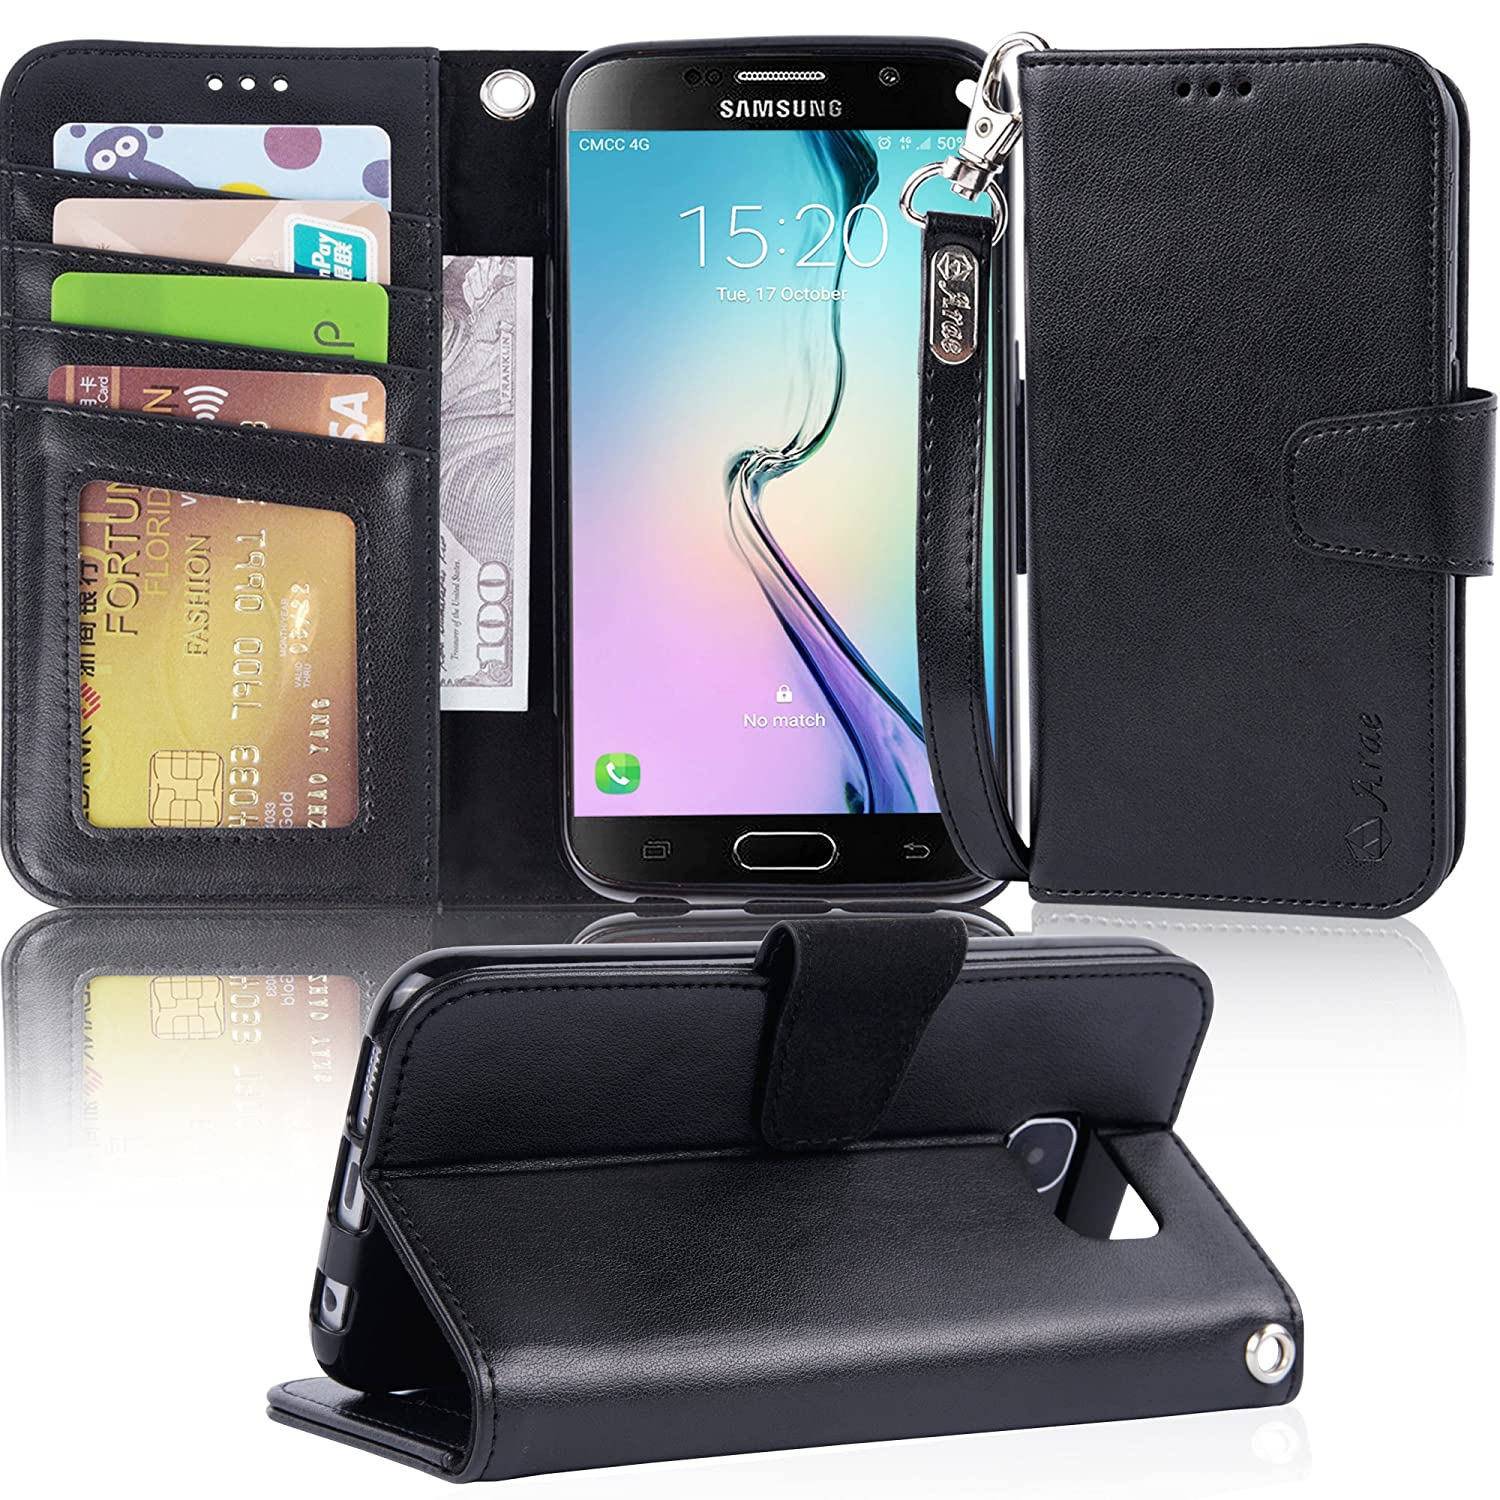 innovative design 78e10 5f245 Galaxy S6 Case, Arae Samsung Galaxy S6 wallet case, [Wrist Strap] Flip  Folio [Kickstand Feature] PU leather wallet case with ID&Credit Card  Pockets ...